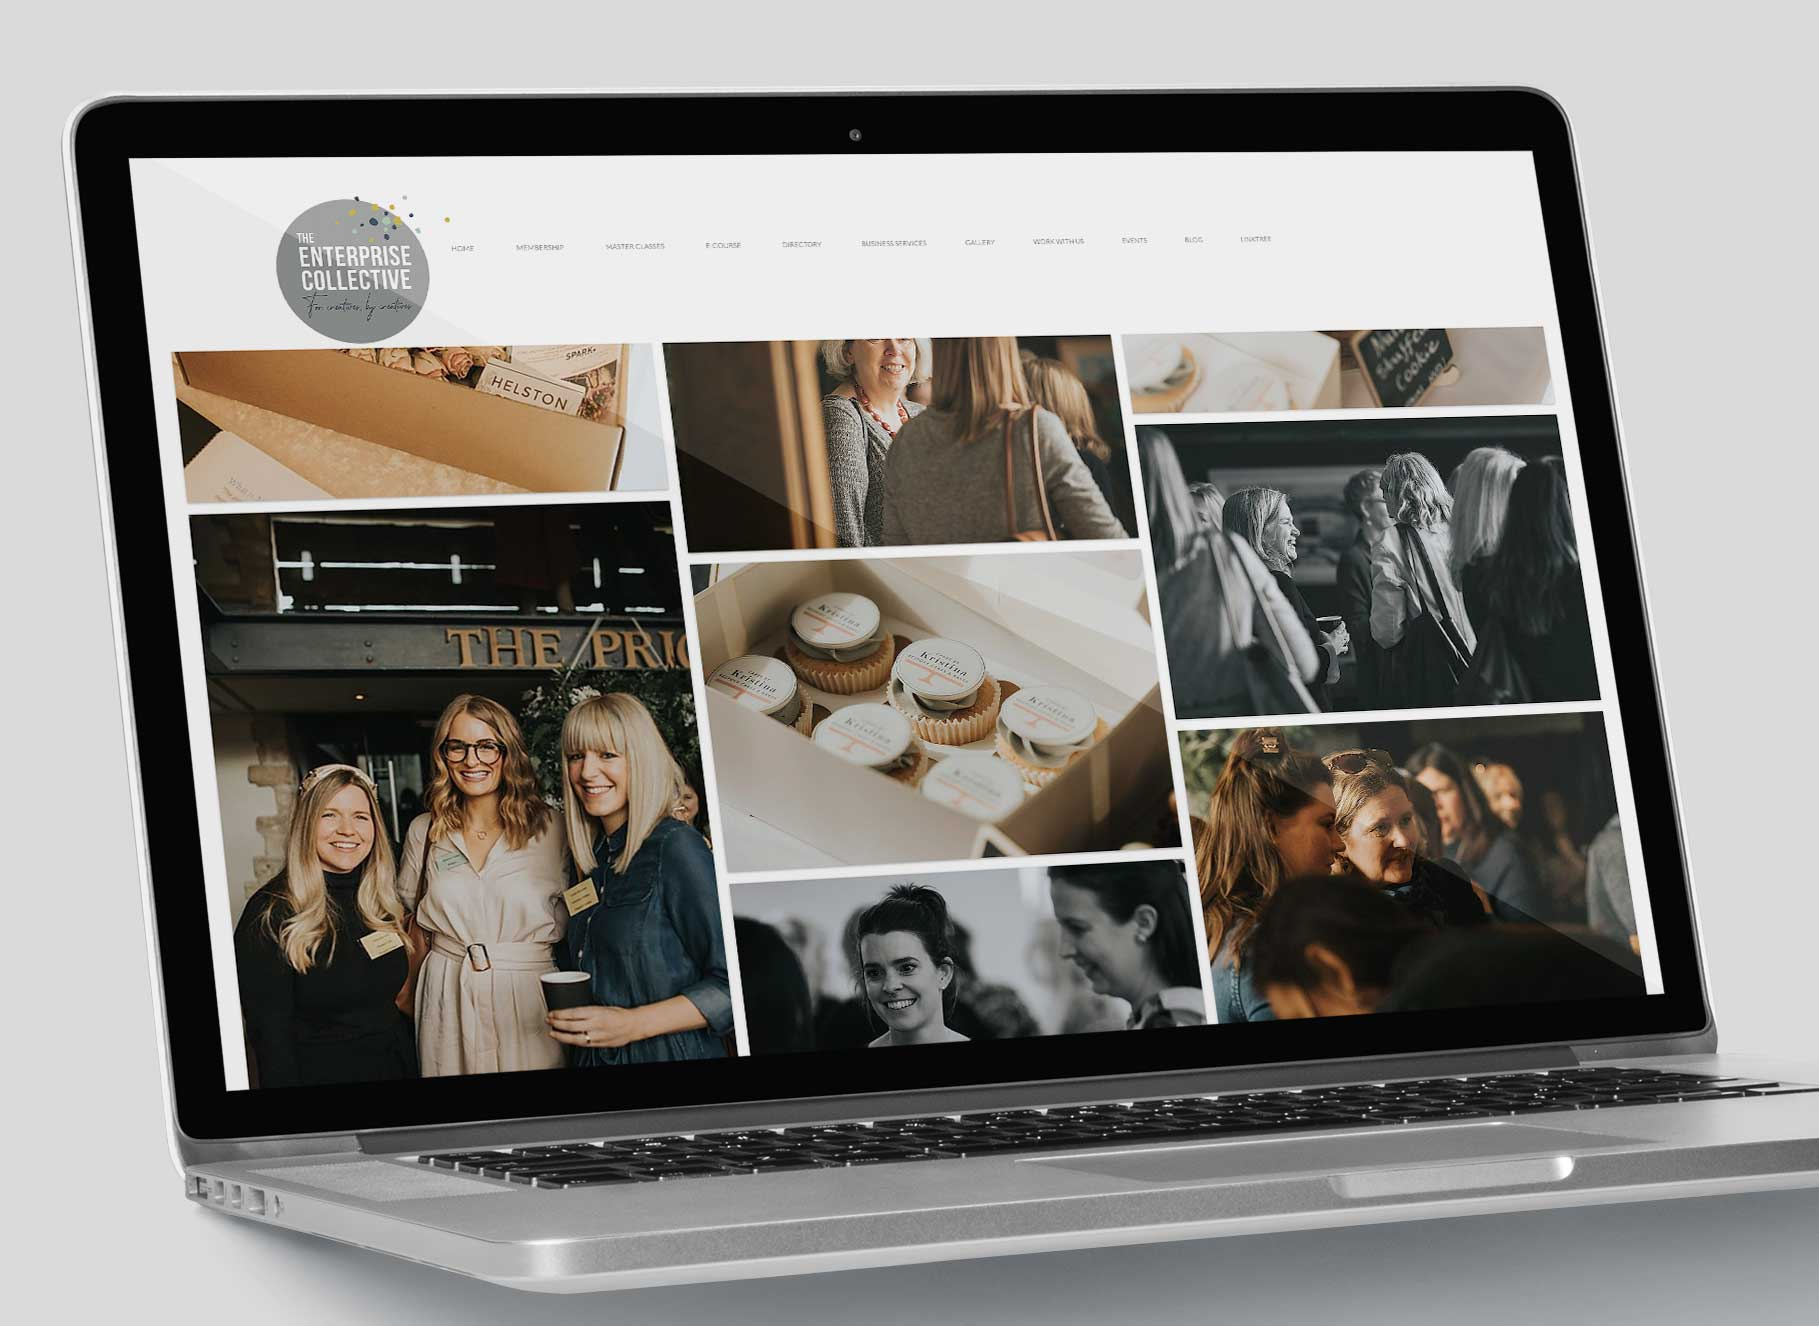 Enterprise Collective Branding Website Gallery